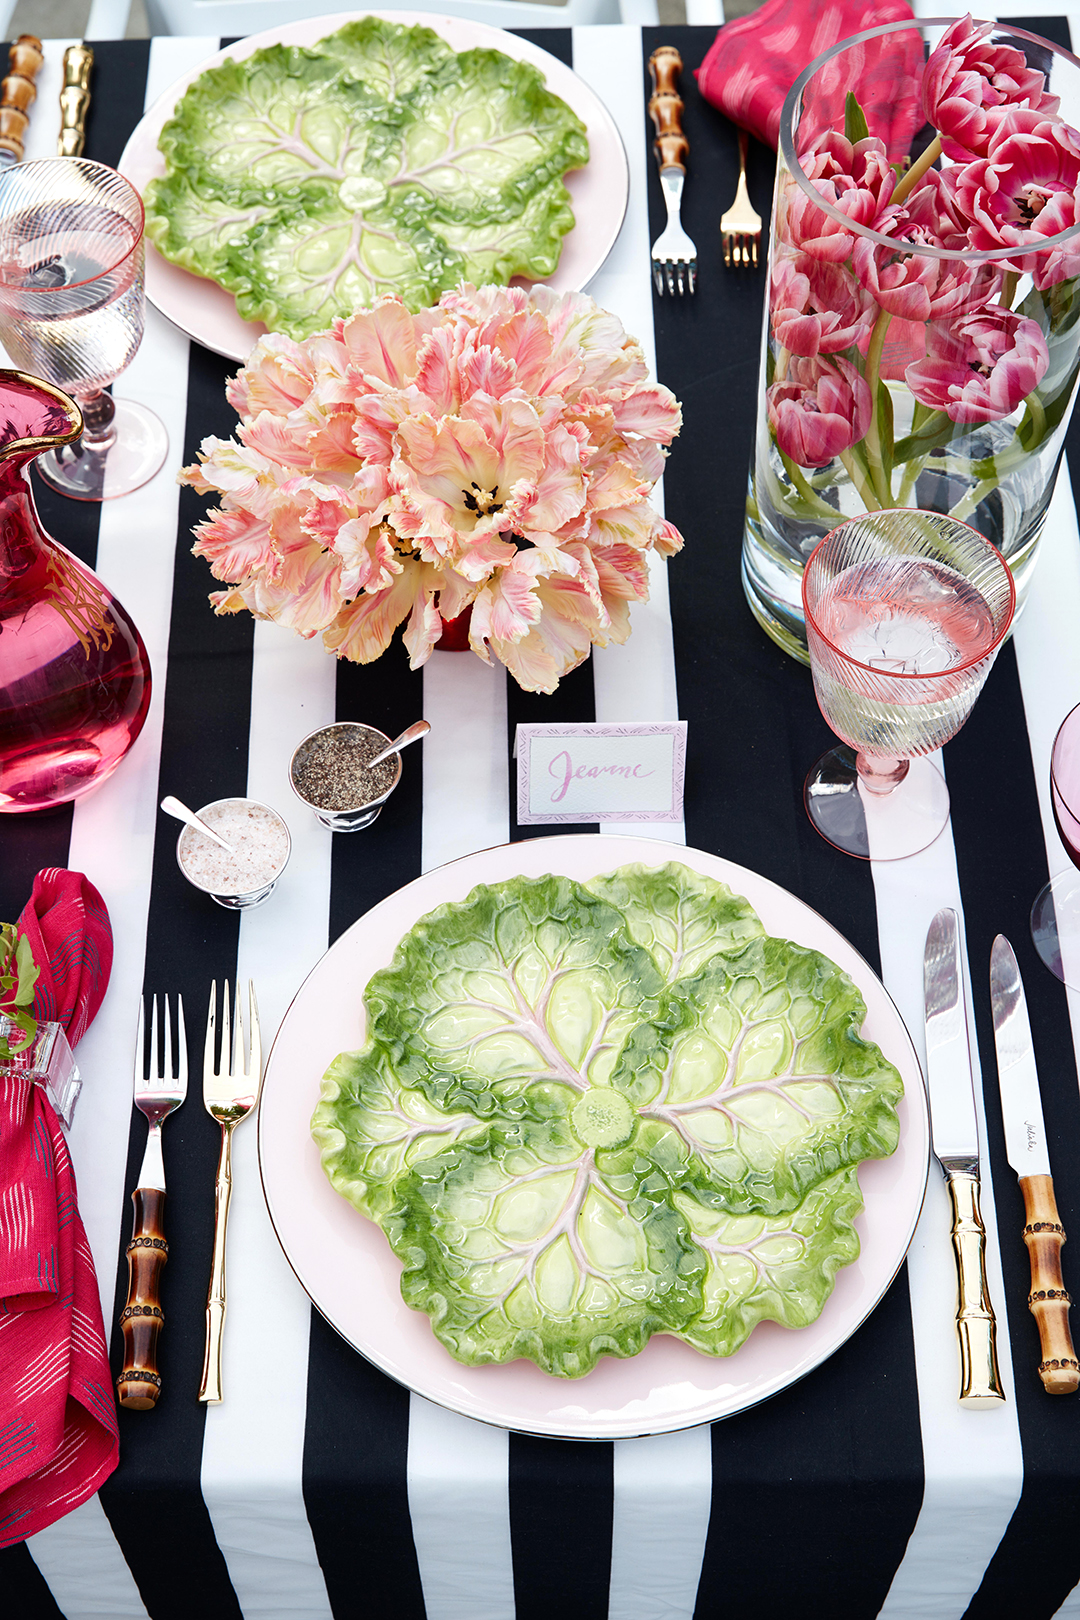 place setting with glass lettuce plate and tulips on striped table